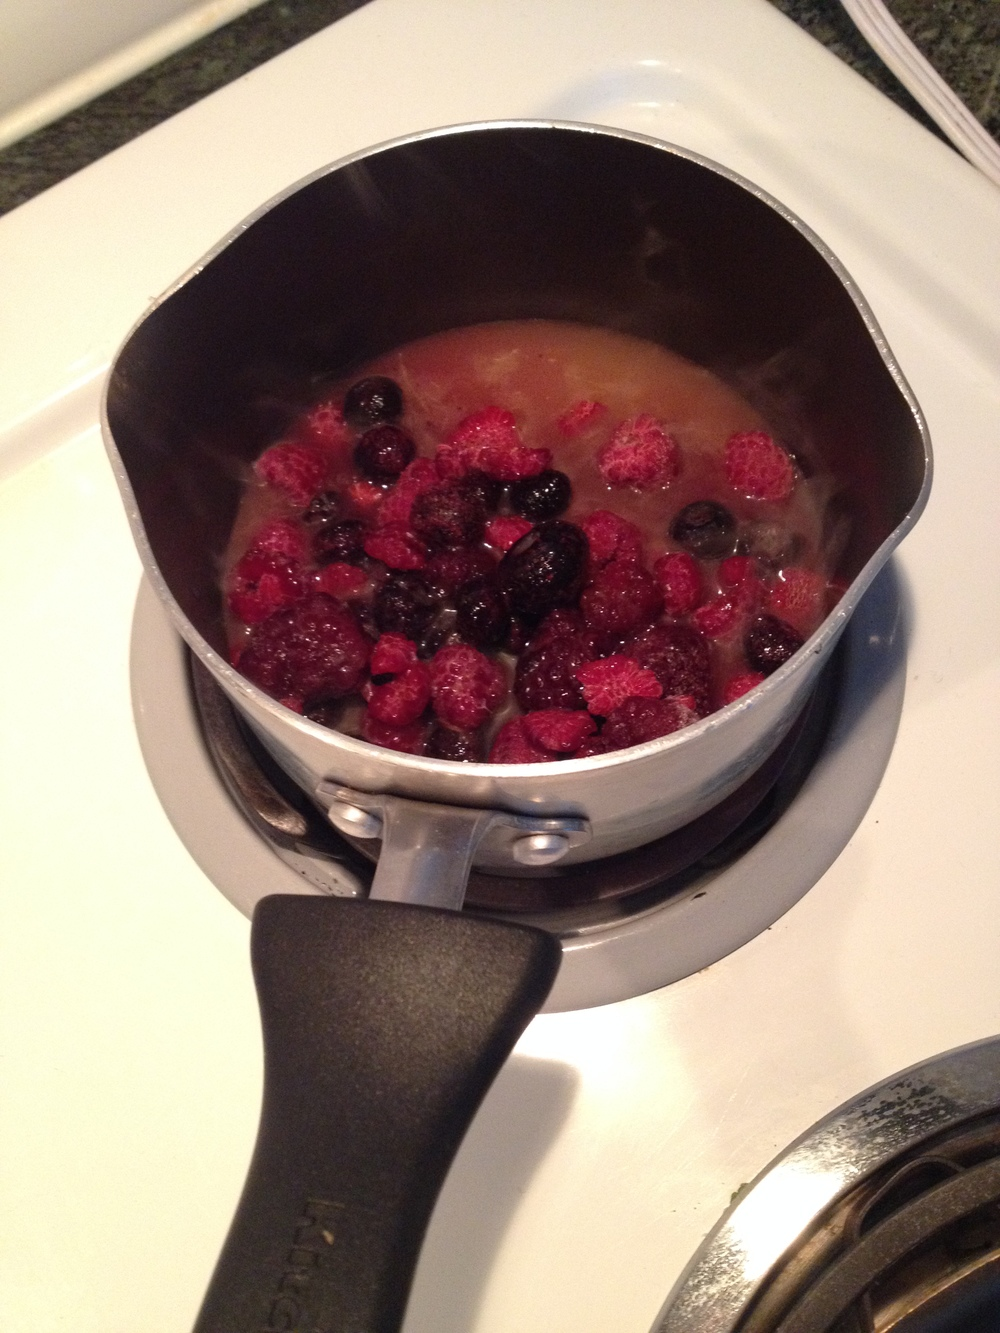 Put berries and juice together in a pot. Turn the stove to high and wait for berries and juice to boil